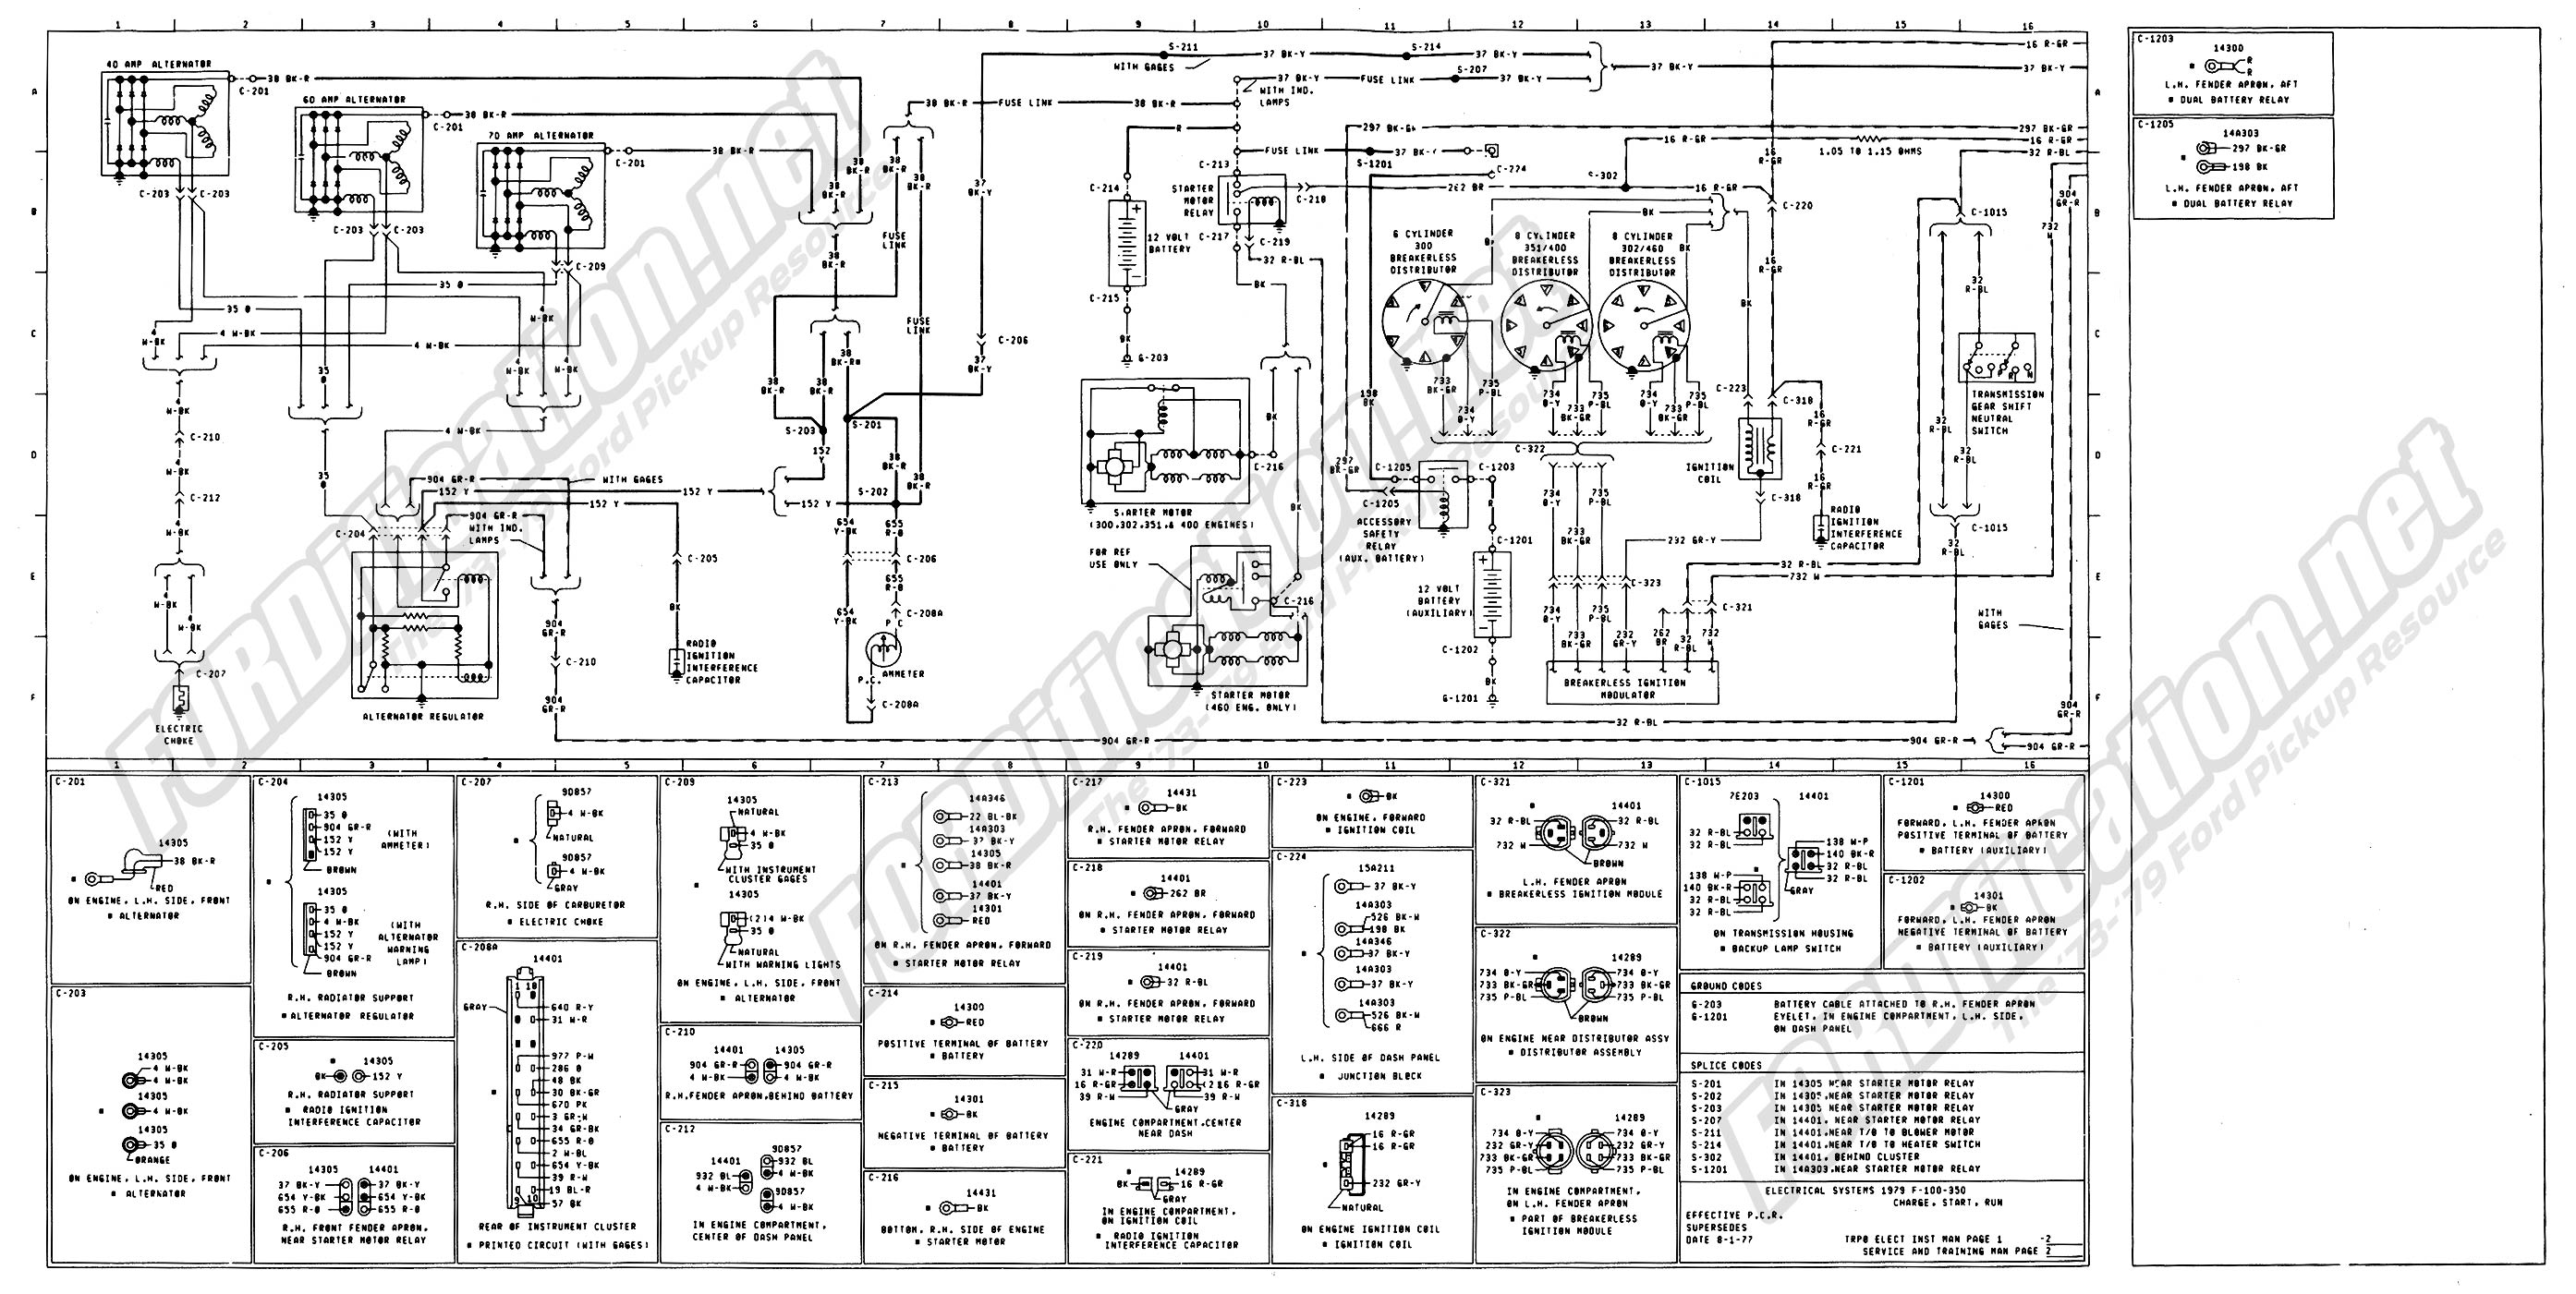 wiring_79master_2of9 1973 1979 ford truck wiring diagrams & schematics fordification net 1999 F150 Radio Wiring Diagram at mifinder.co